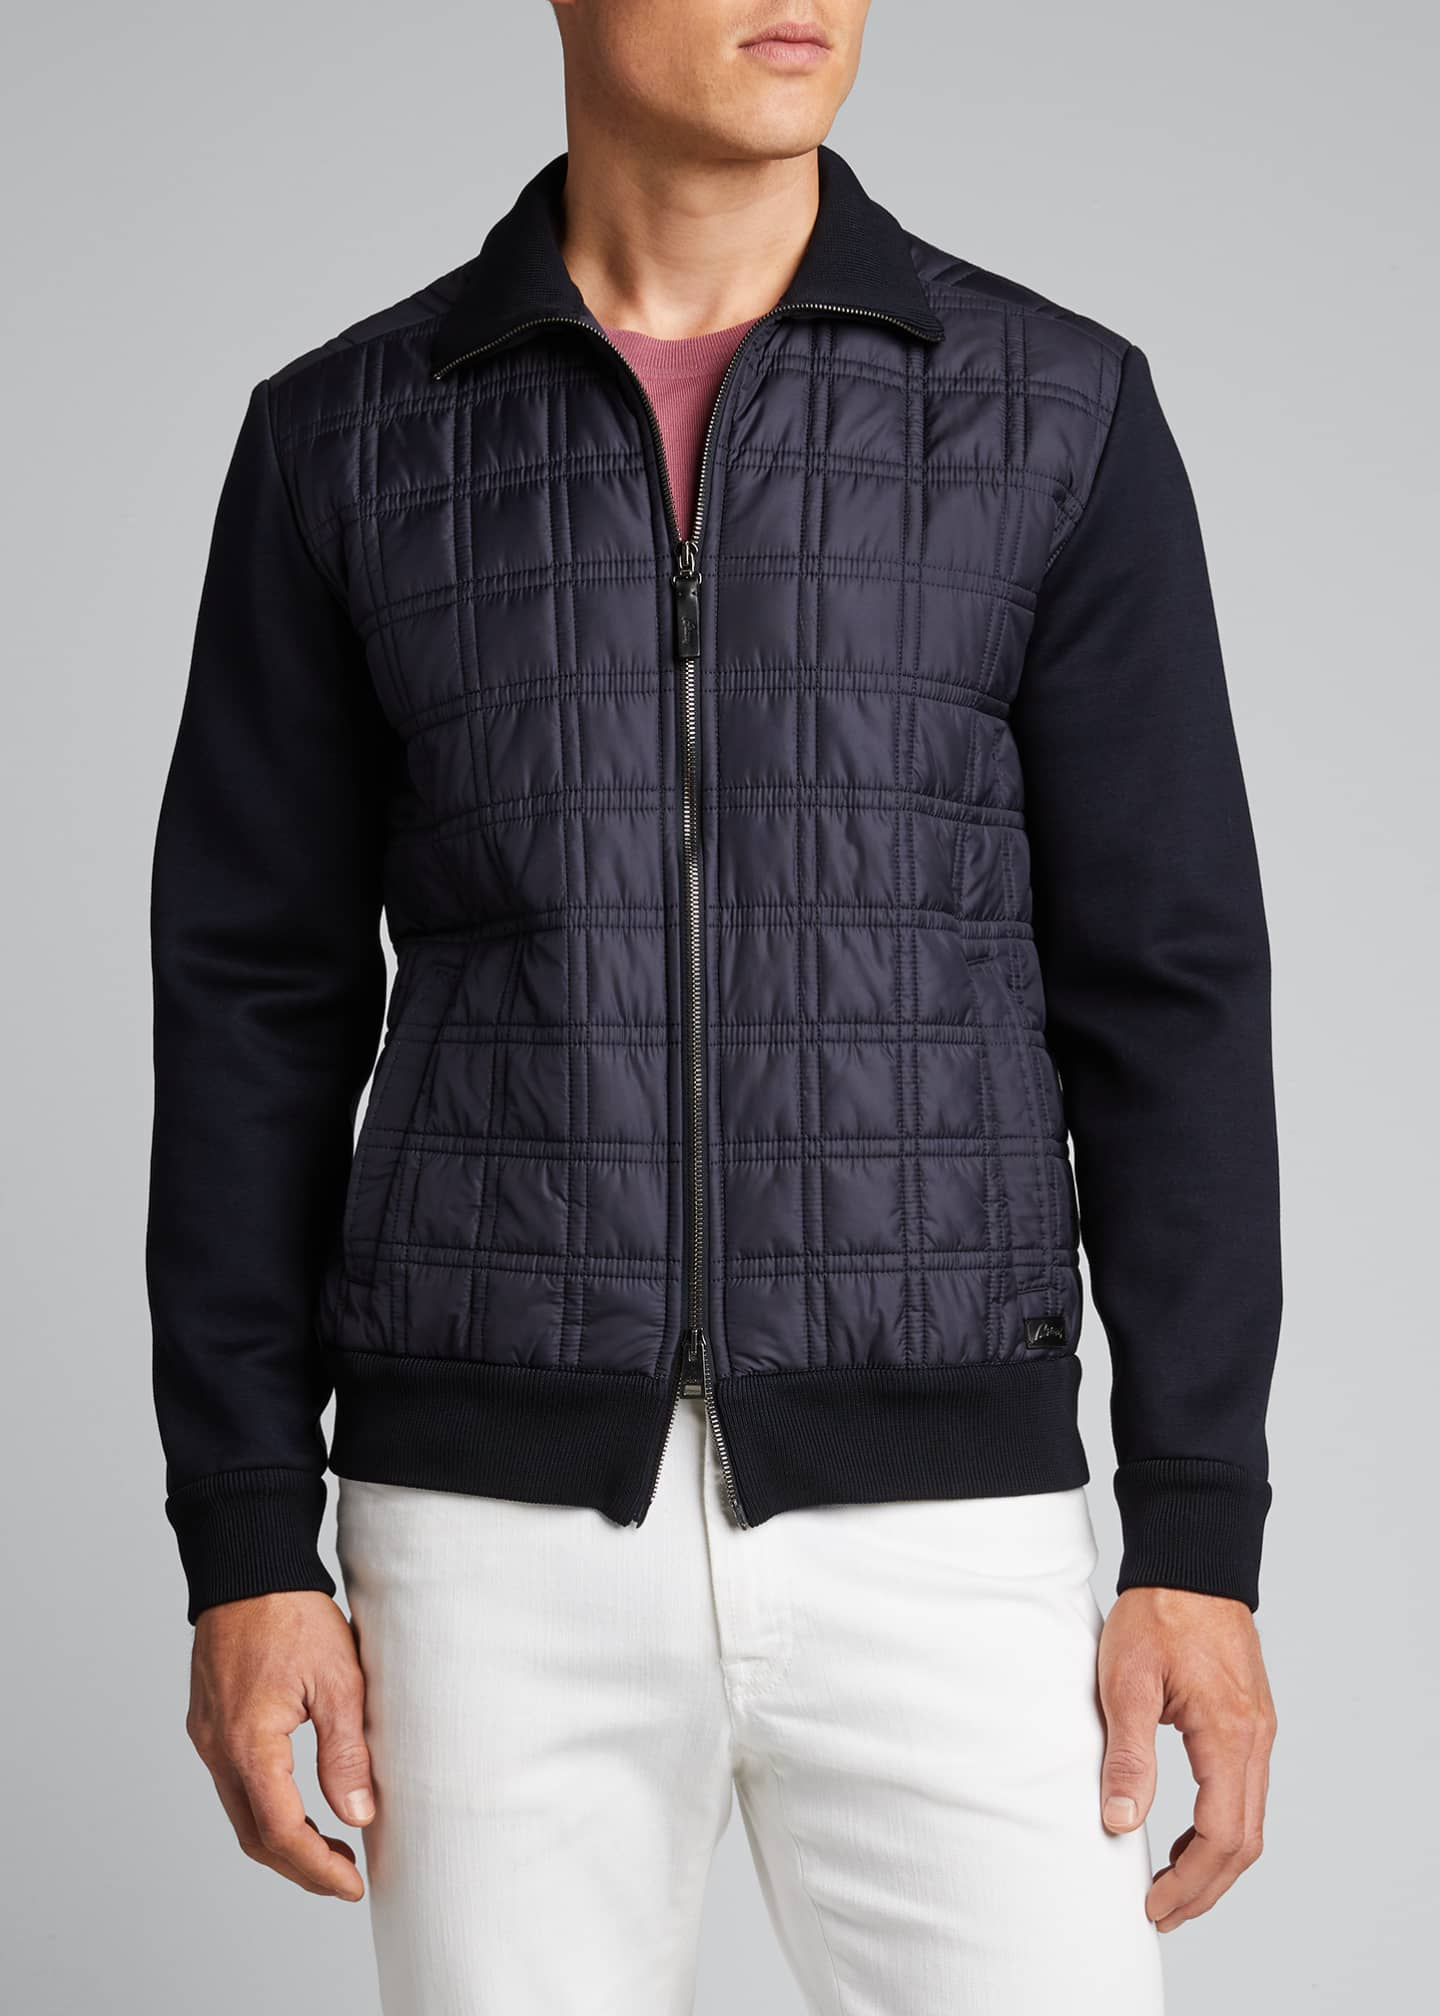 Image 3 of 5: Men's Quilt Knit Blouson Jacket